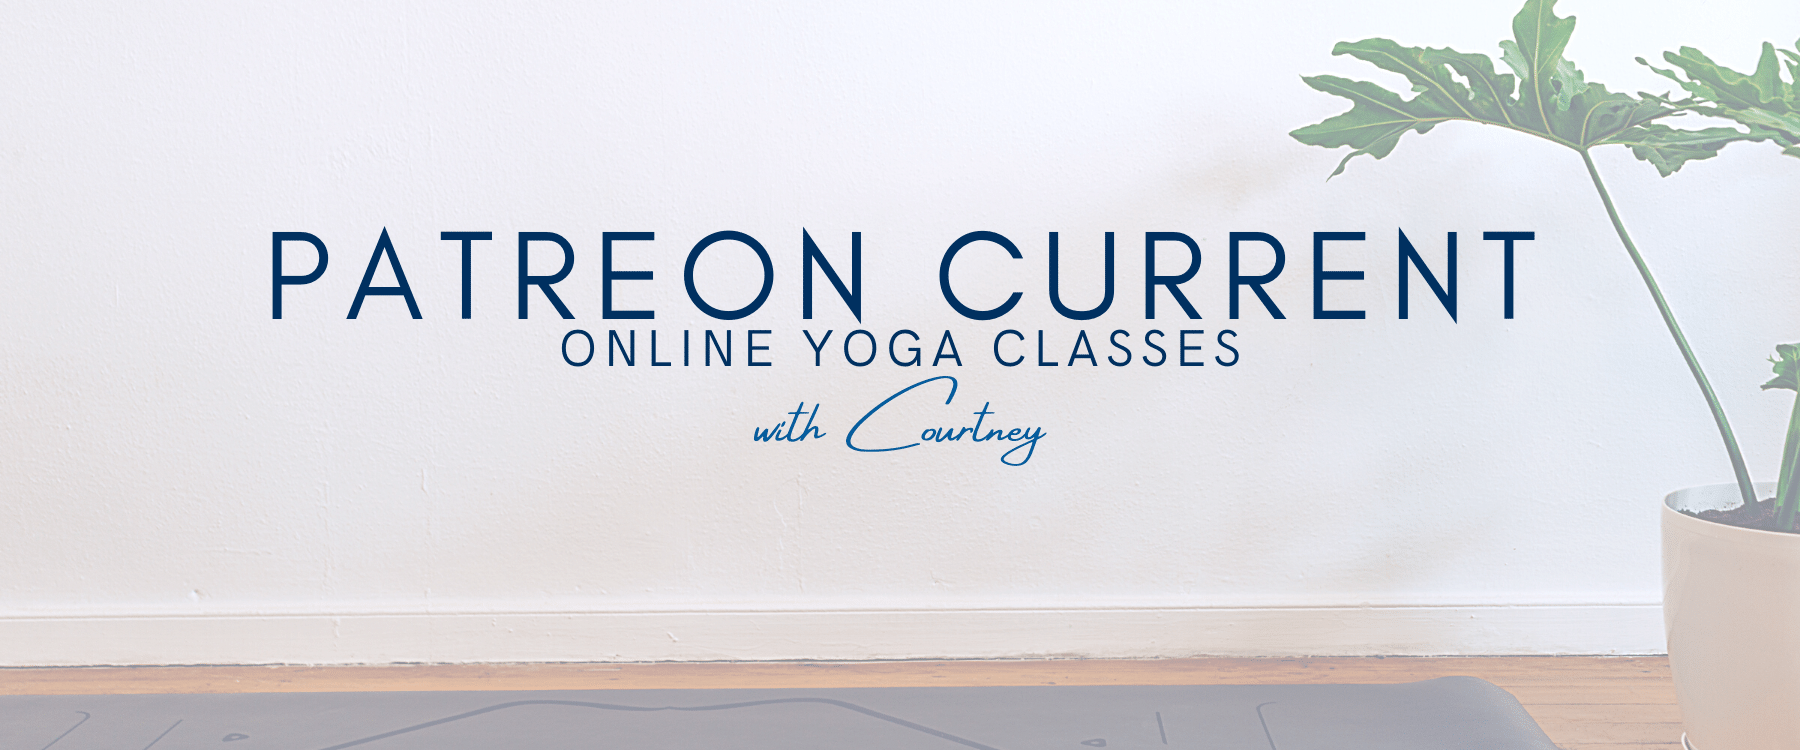 Patreon Yoga Current Yoga Videos Online with Courtney